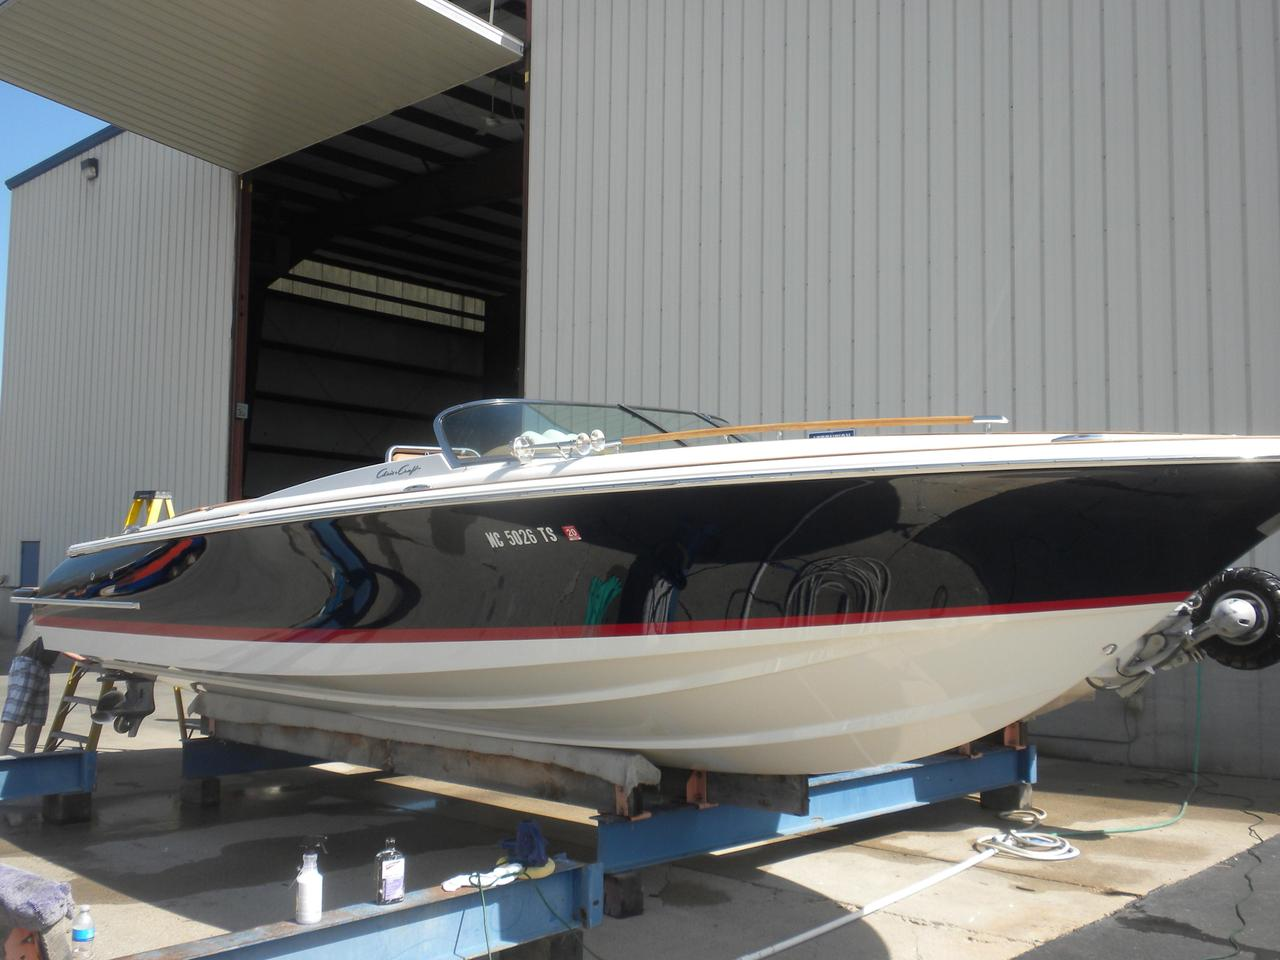 2013 Used Chris Craft 28 Corsair Cuddy Cabin Boat For Sale